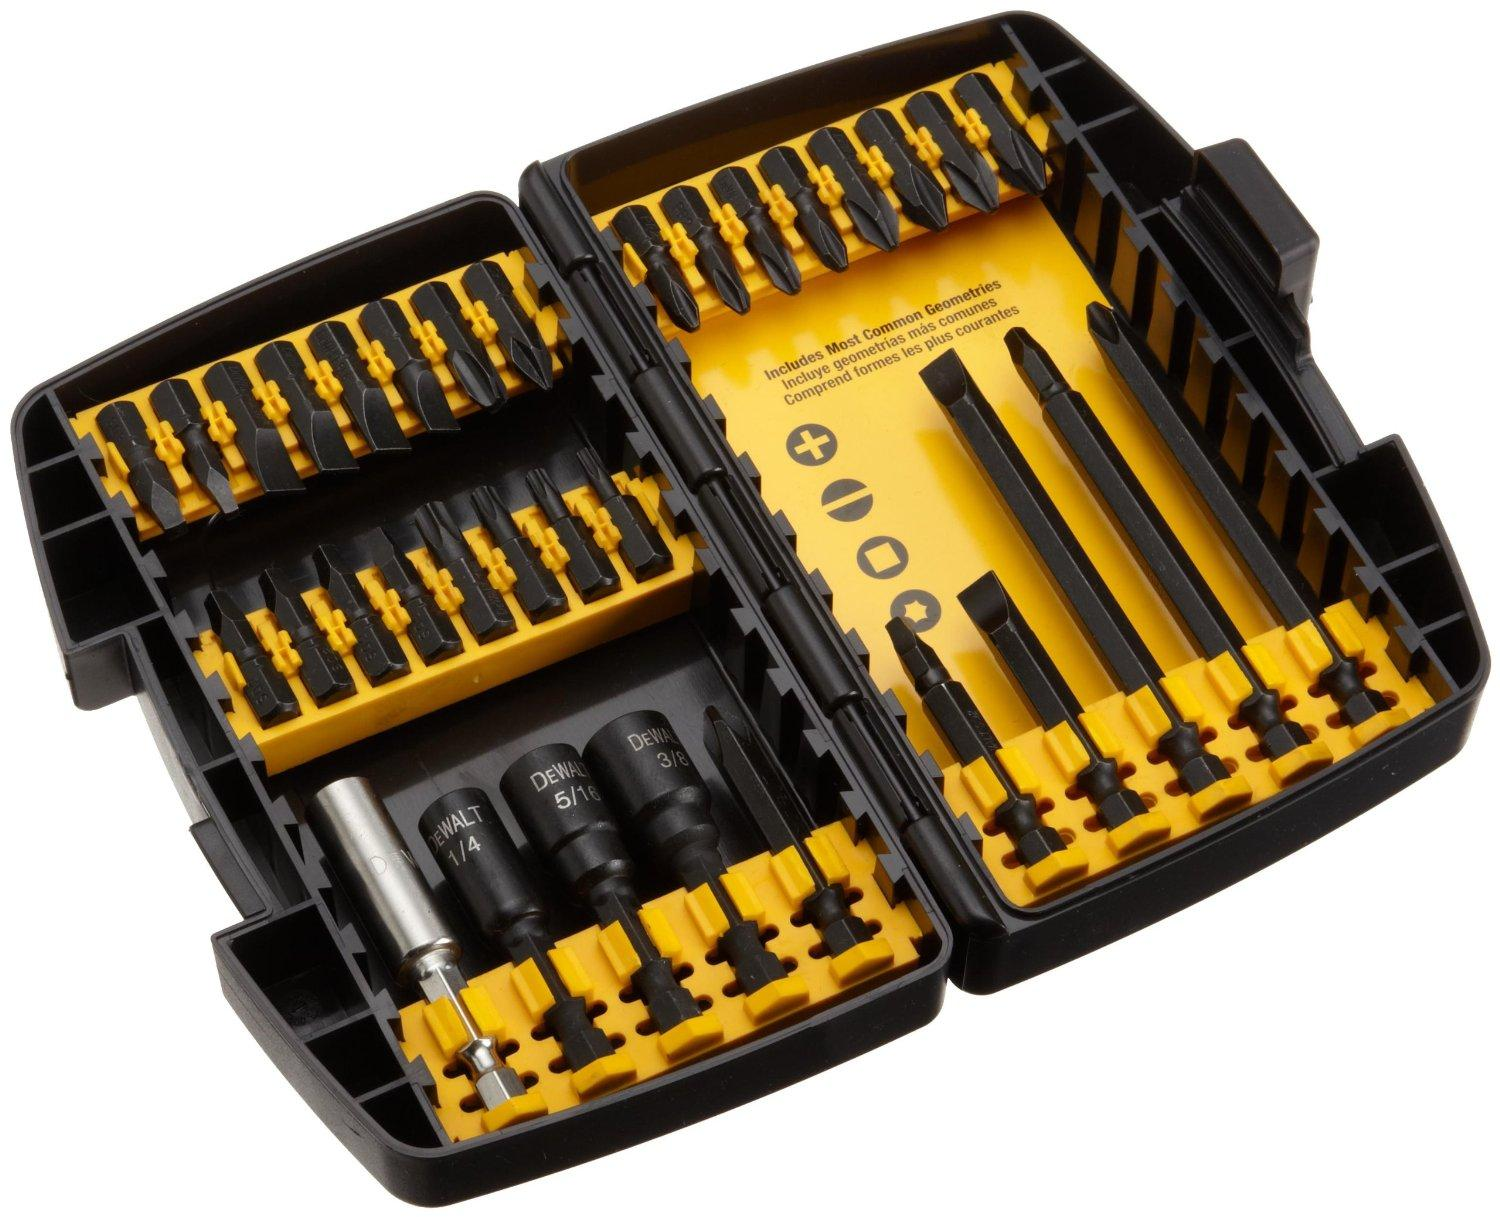 $9.99 DEWALT DW2153 IMPACT READY Accessory Set, 34-Piece